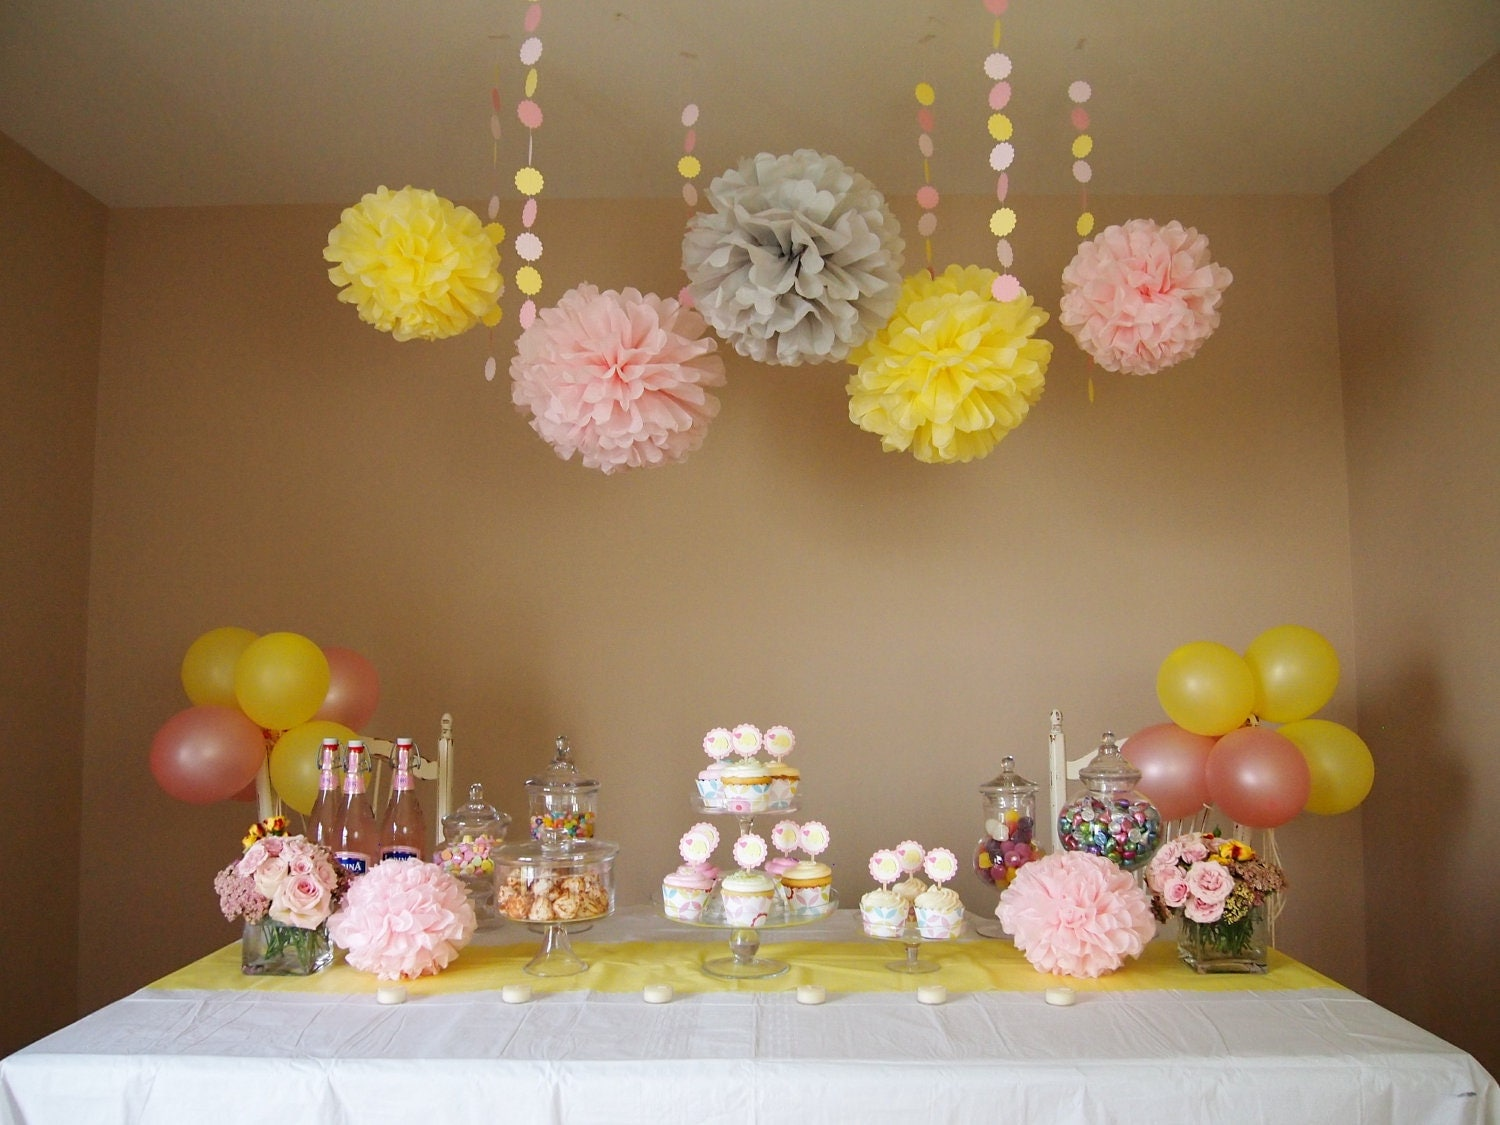 Homemade Birthday Decorations For Babies Image Inspiration of Cake